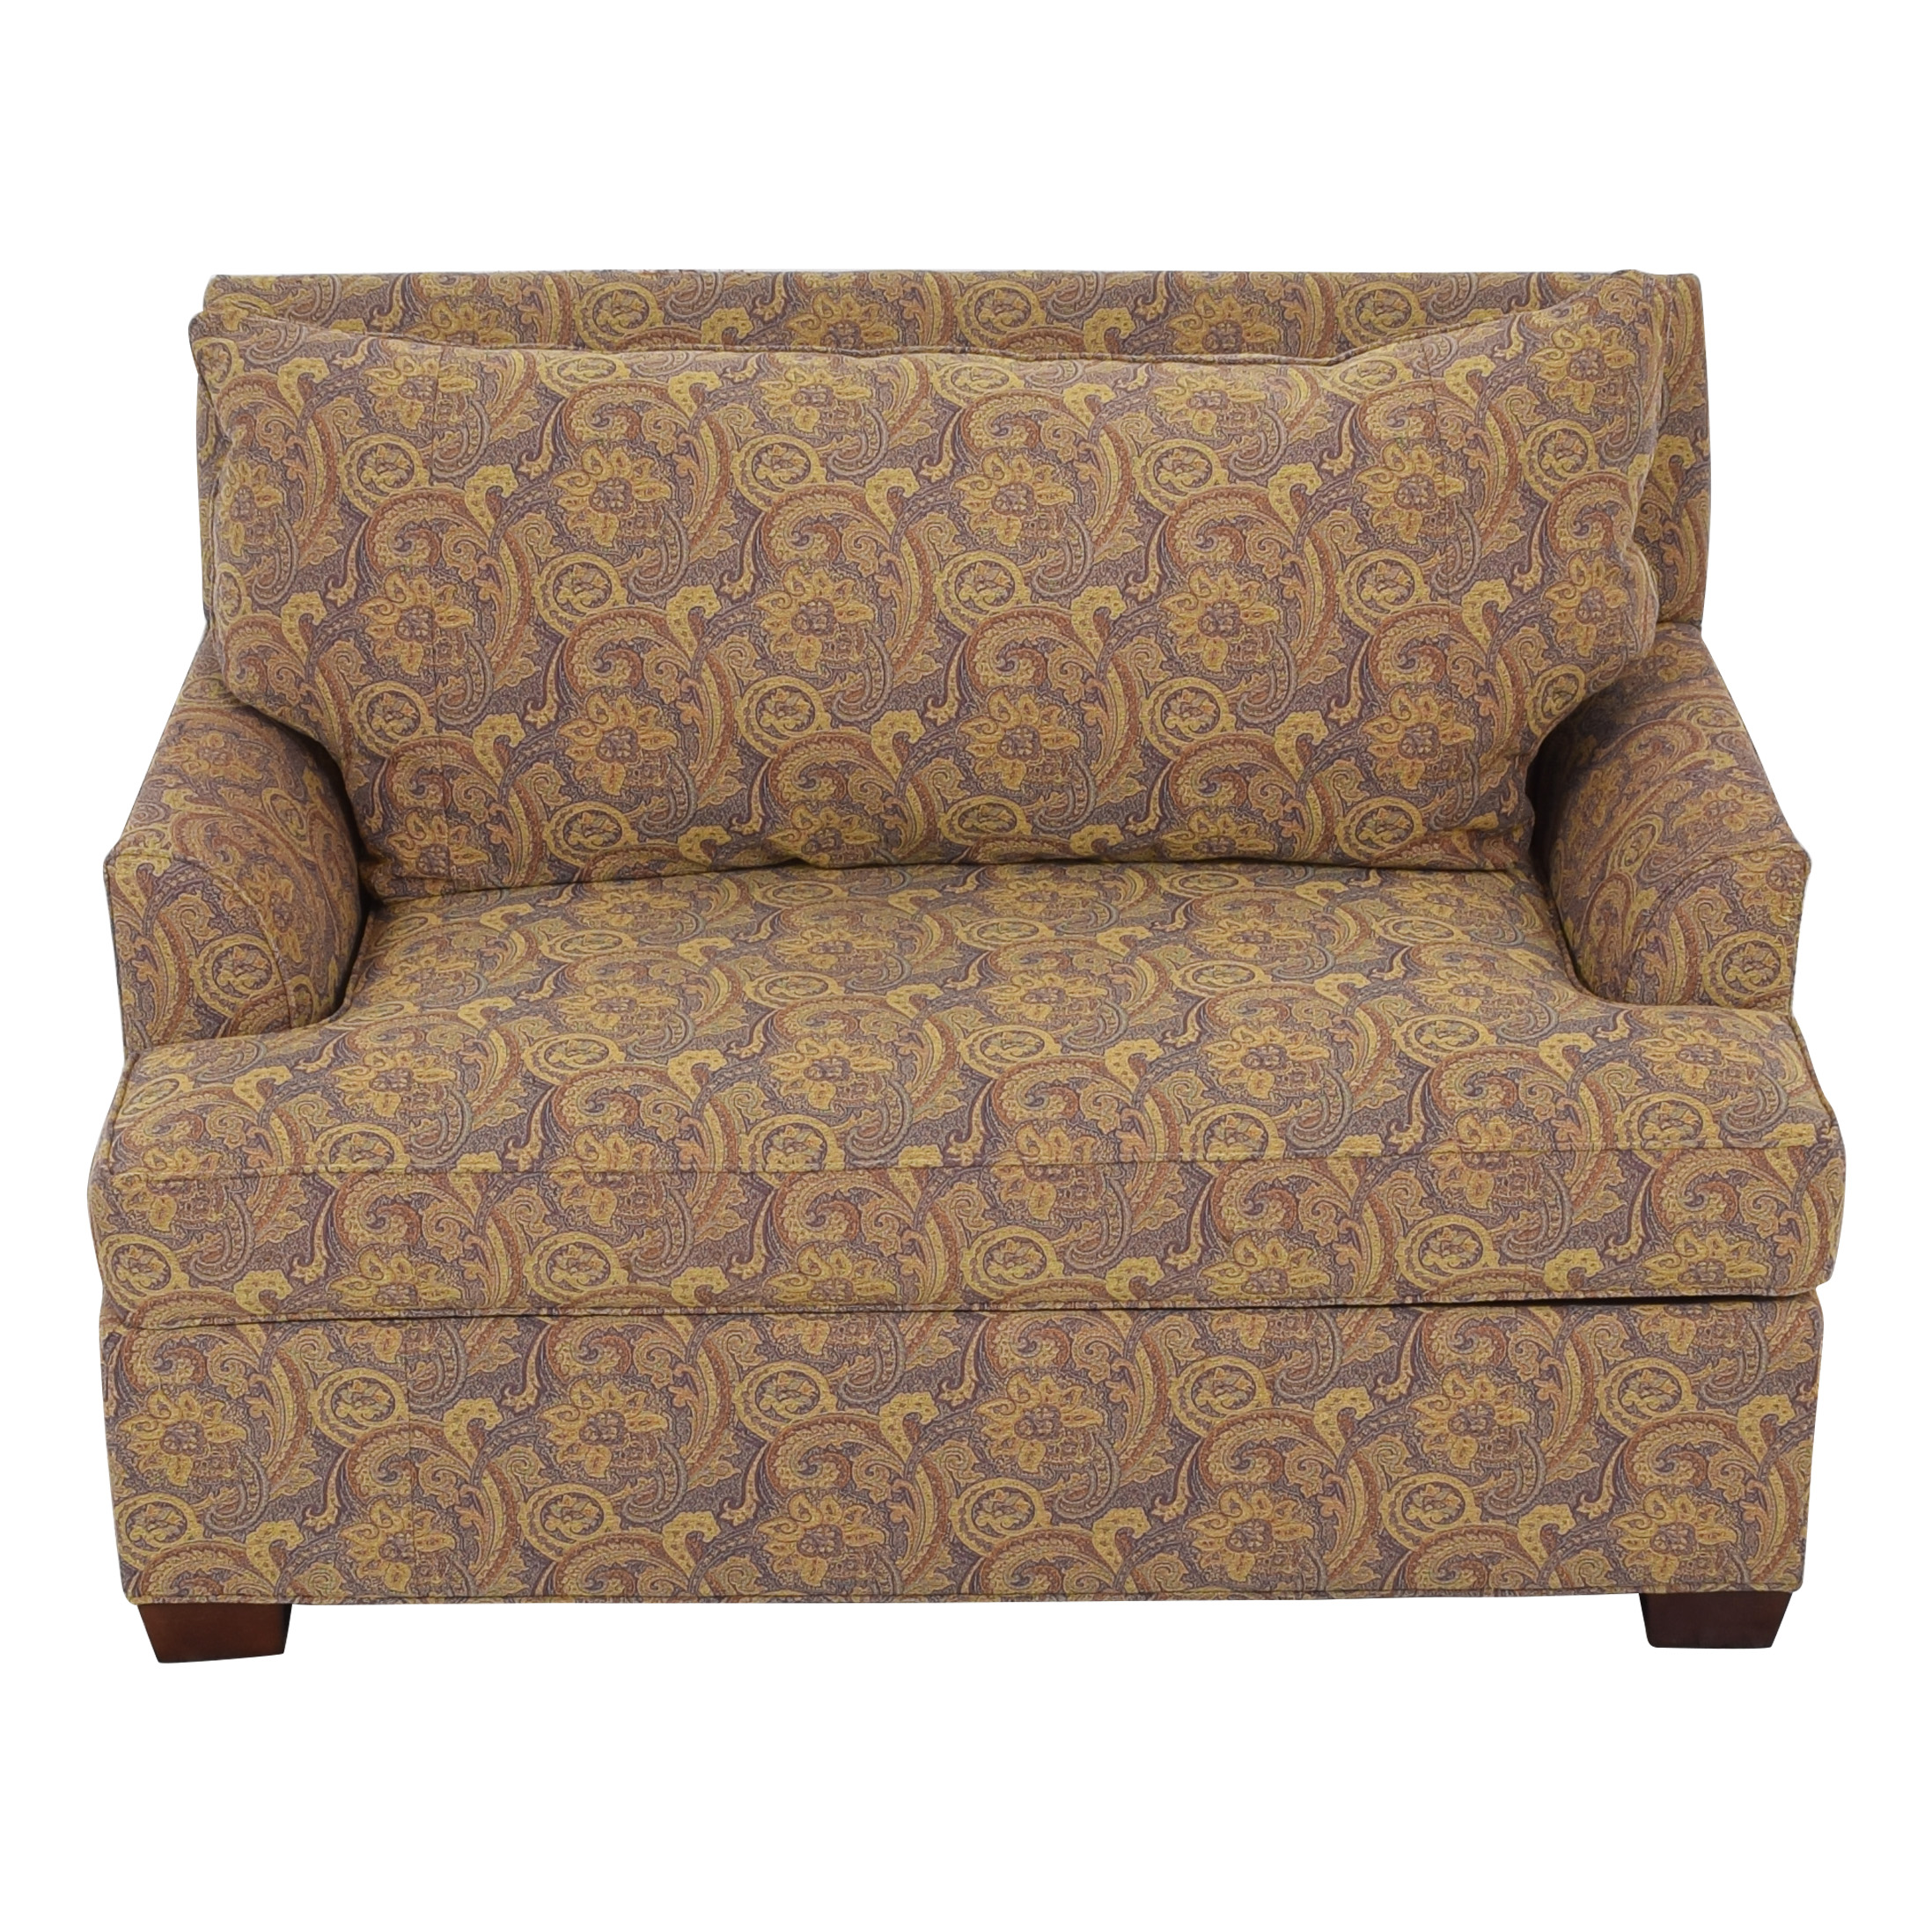 Ethan Allen Ethan Allen Marina Chair and a Half Twin Sleeper with Ottoman dimensions